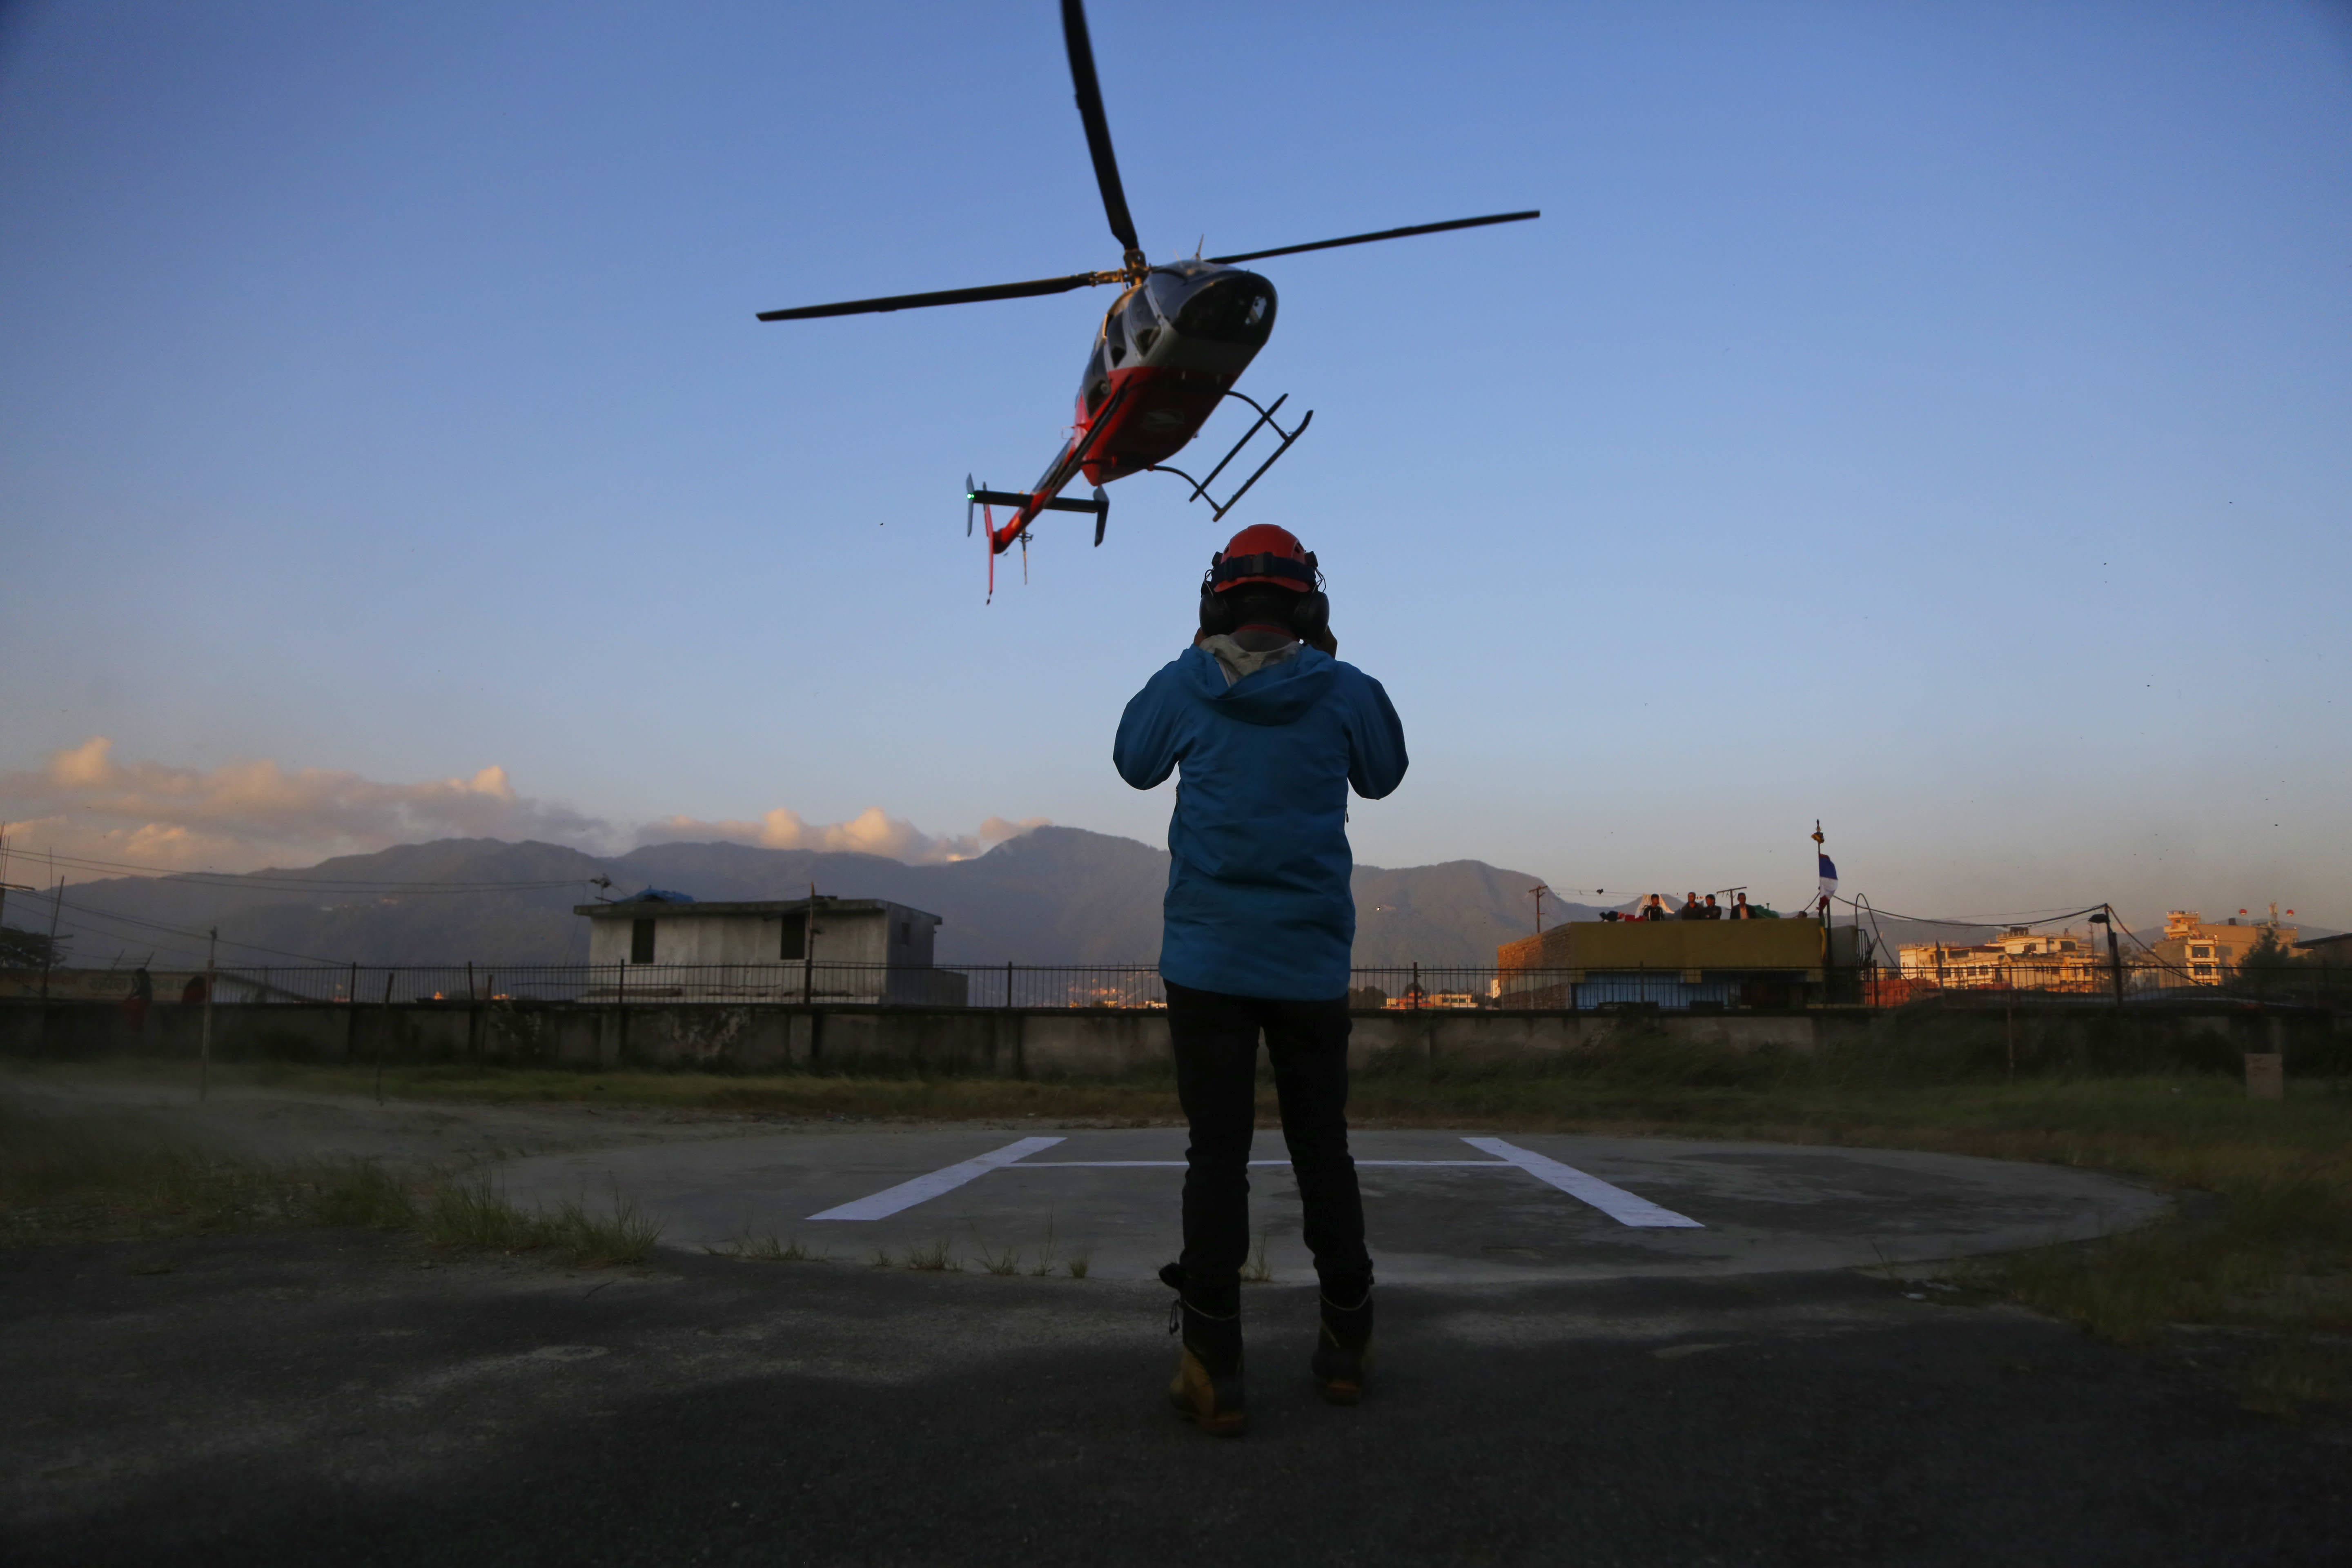 A helicopter carrying bodies of those killed in Gurja Himal mountain arrives at the Teaching hospital in Kathmandu, Nepal, Sunday, Oct. 14, 2018. Rescuers retrieved the bodies of five South Korean climbers and their four Nepalese guides from Gurja Himal mountain, where they were killed when their base camp was swept by a strong storm. (AP Photo/Niranjan Shrestha)